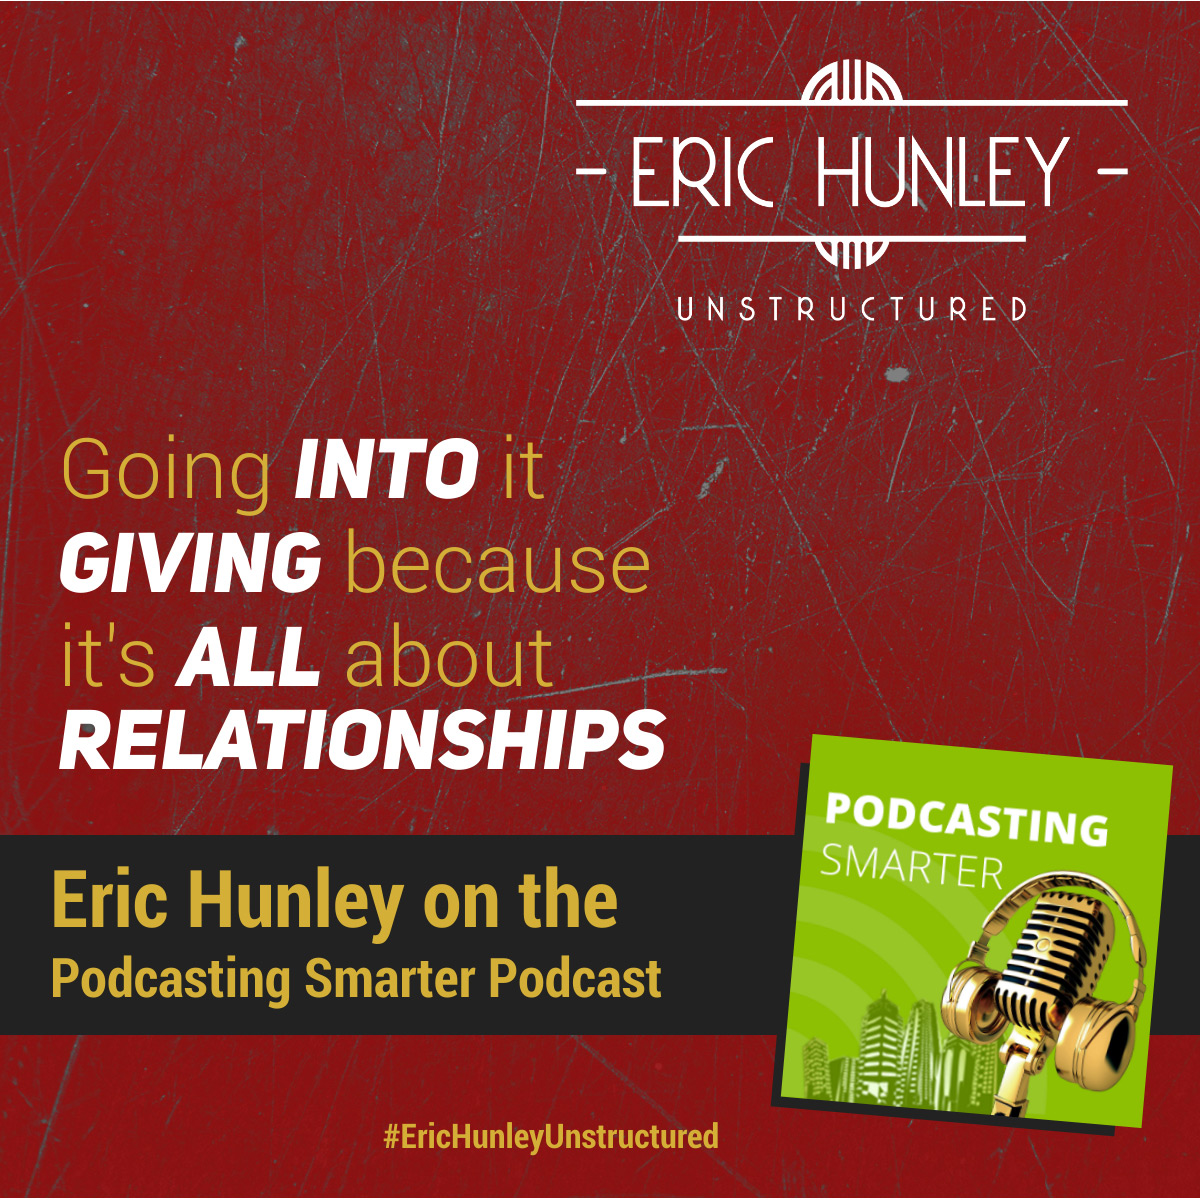 Eric Hunley Podcast Appearance Interviews - Podcasting Smarter Podcast Square Post